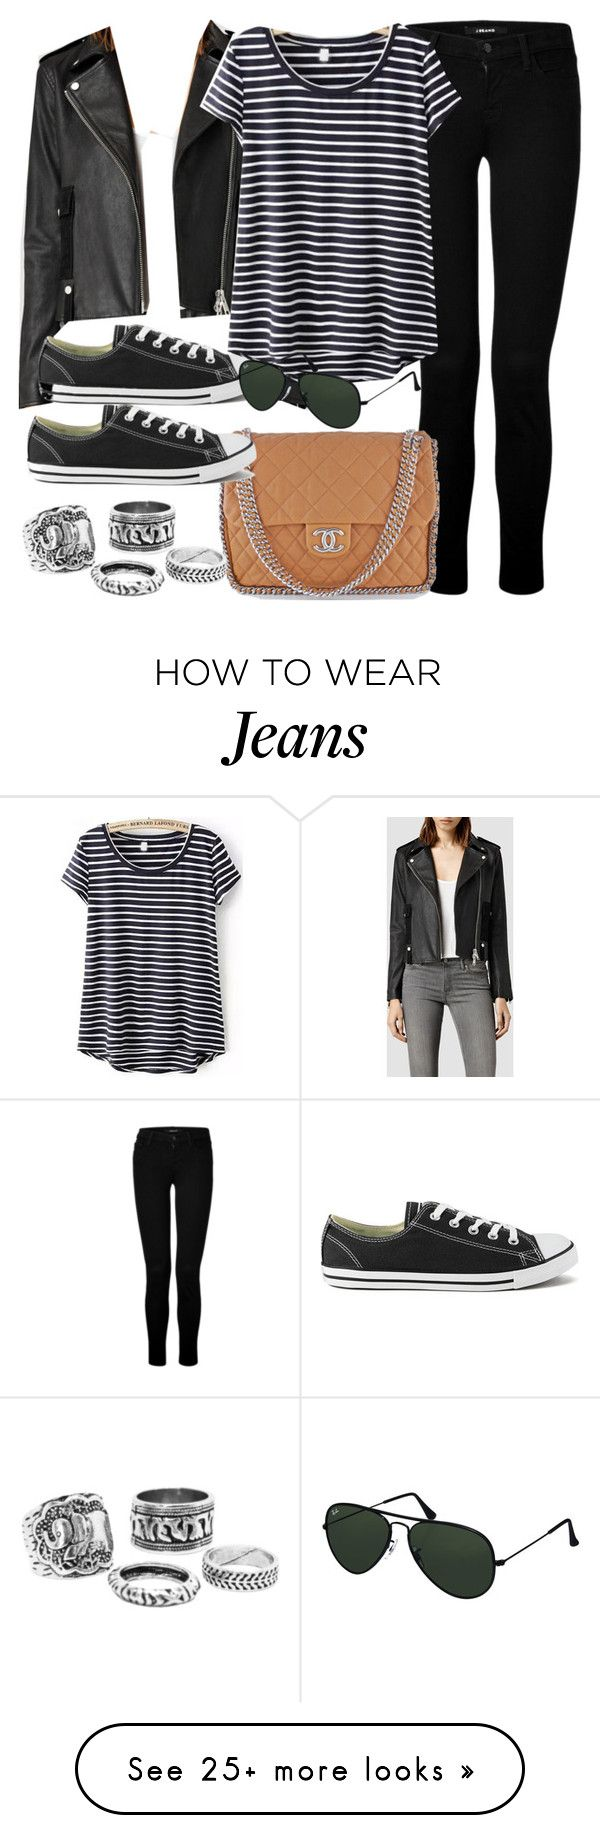 """""""Style #9322"""" by vany-alvarado on Polyvore featuring AllSaints, Converse, J Brand, Chanel and Ray-Ban"""